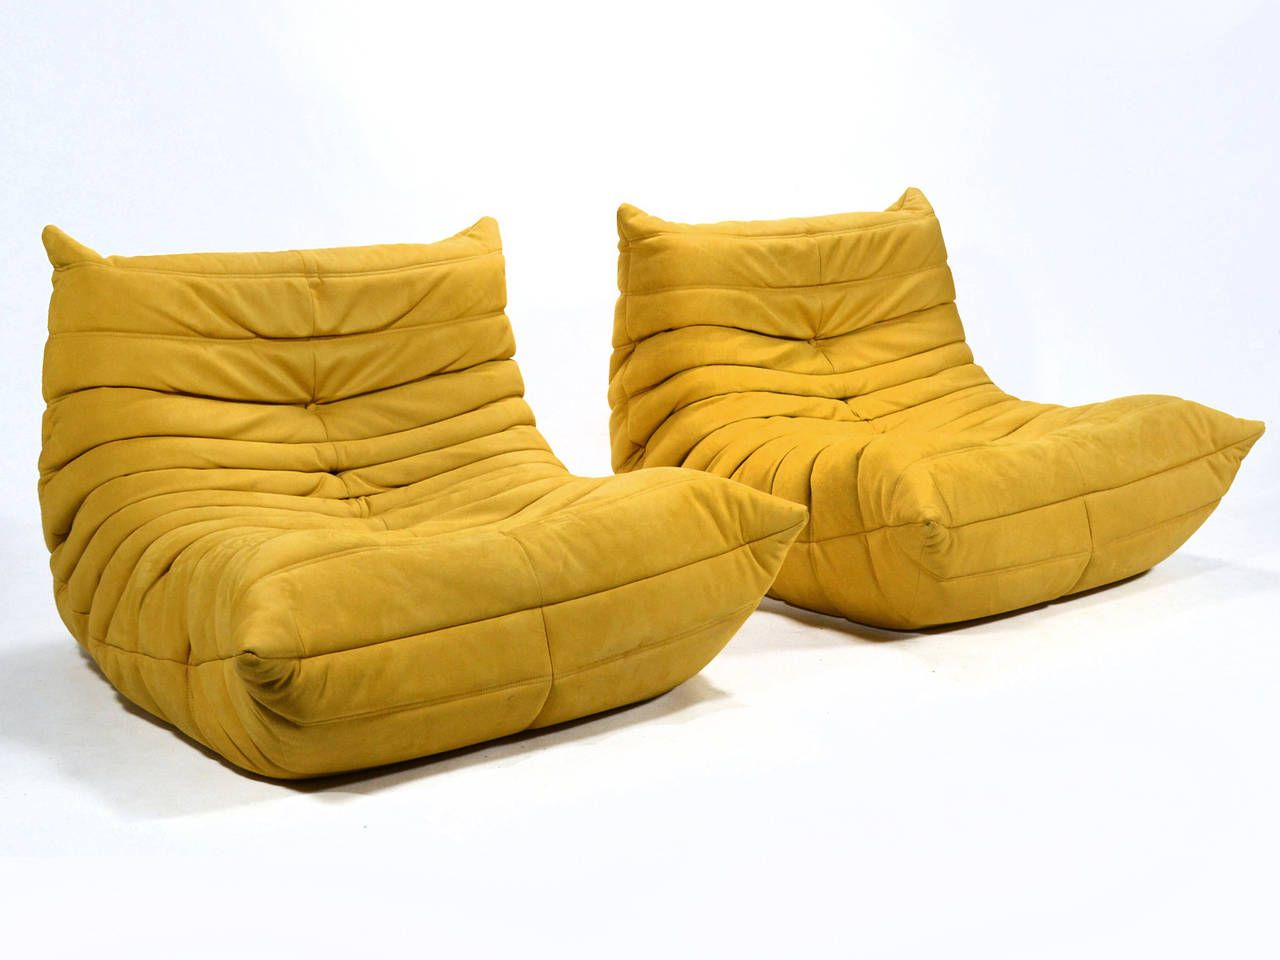 Pair of Michel Ducaroy Togo Lounge Chairs by Ligne Roset